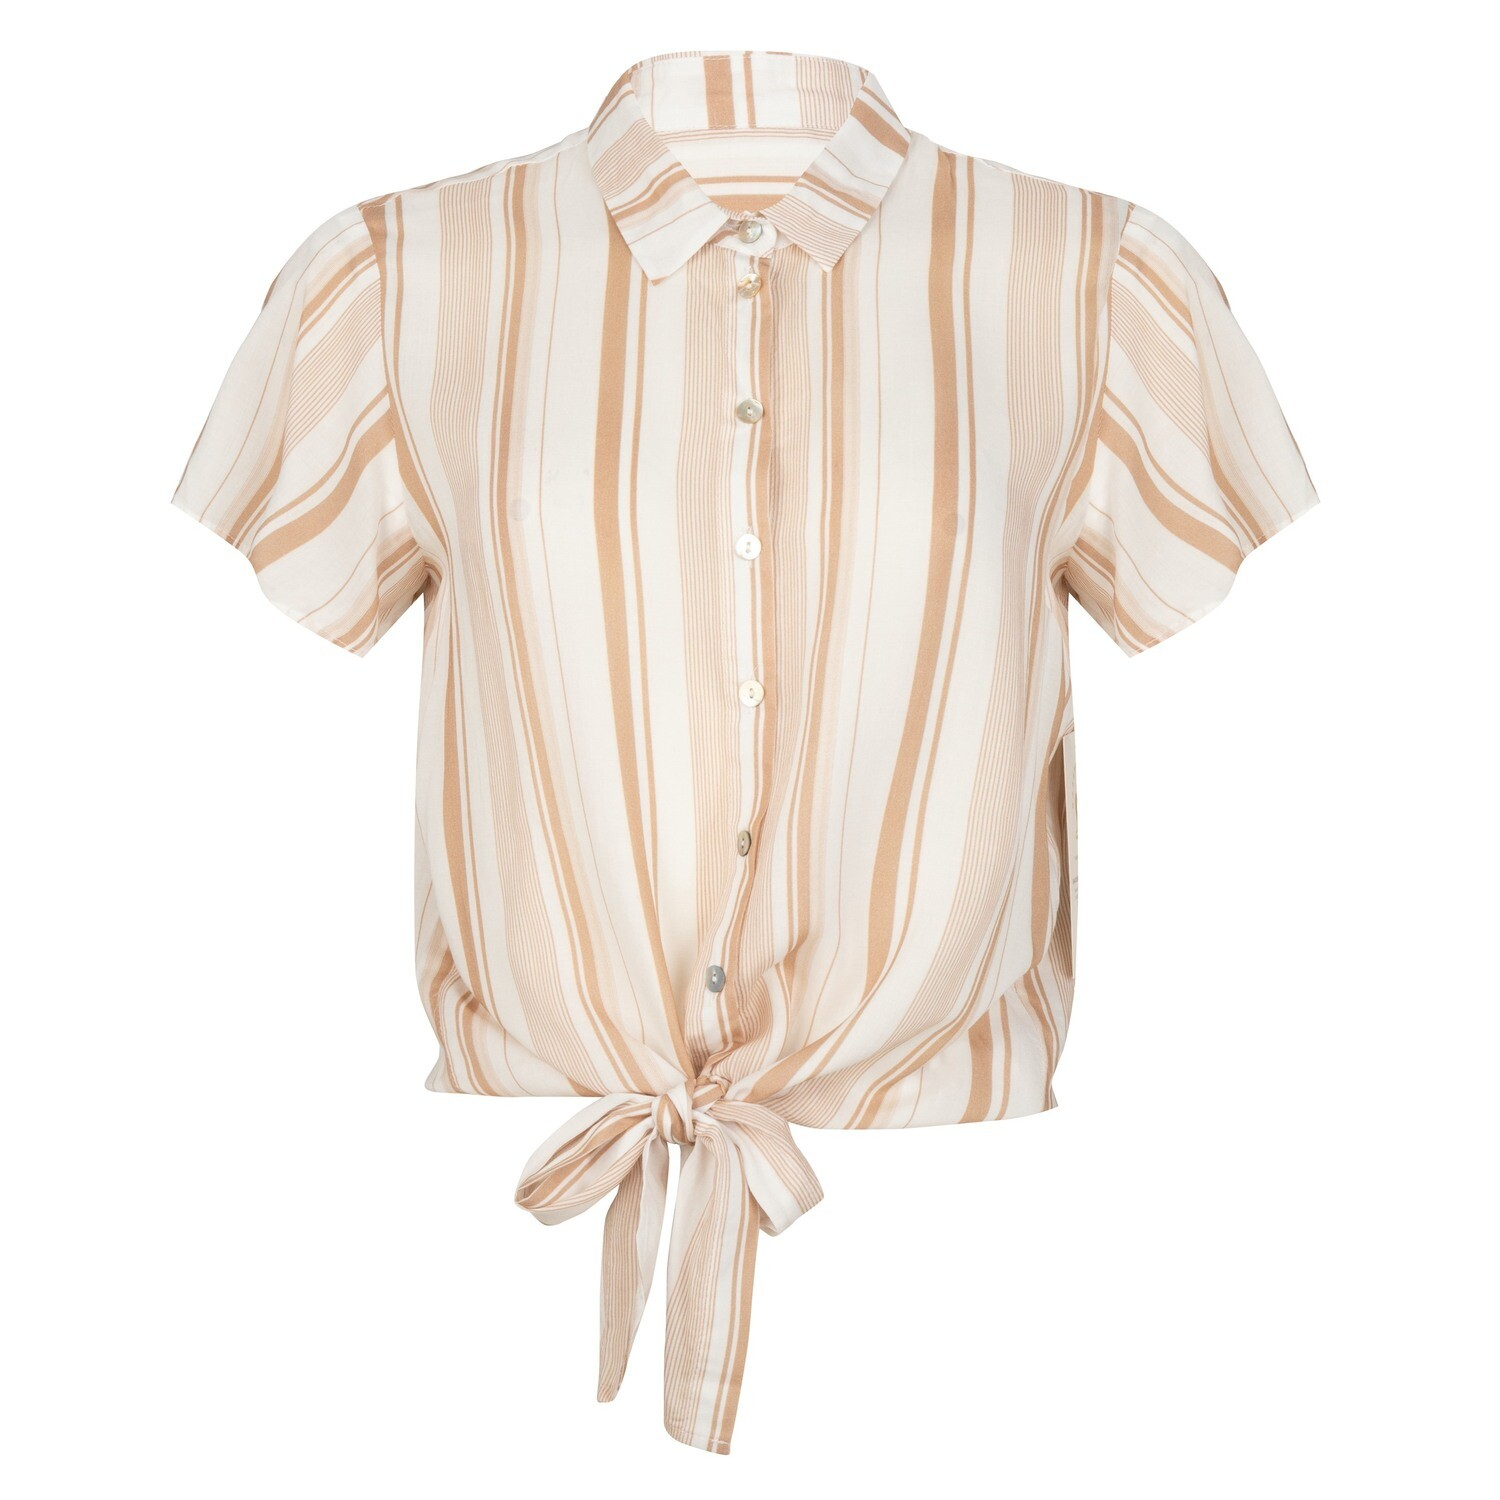 T-shirt striped knot